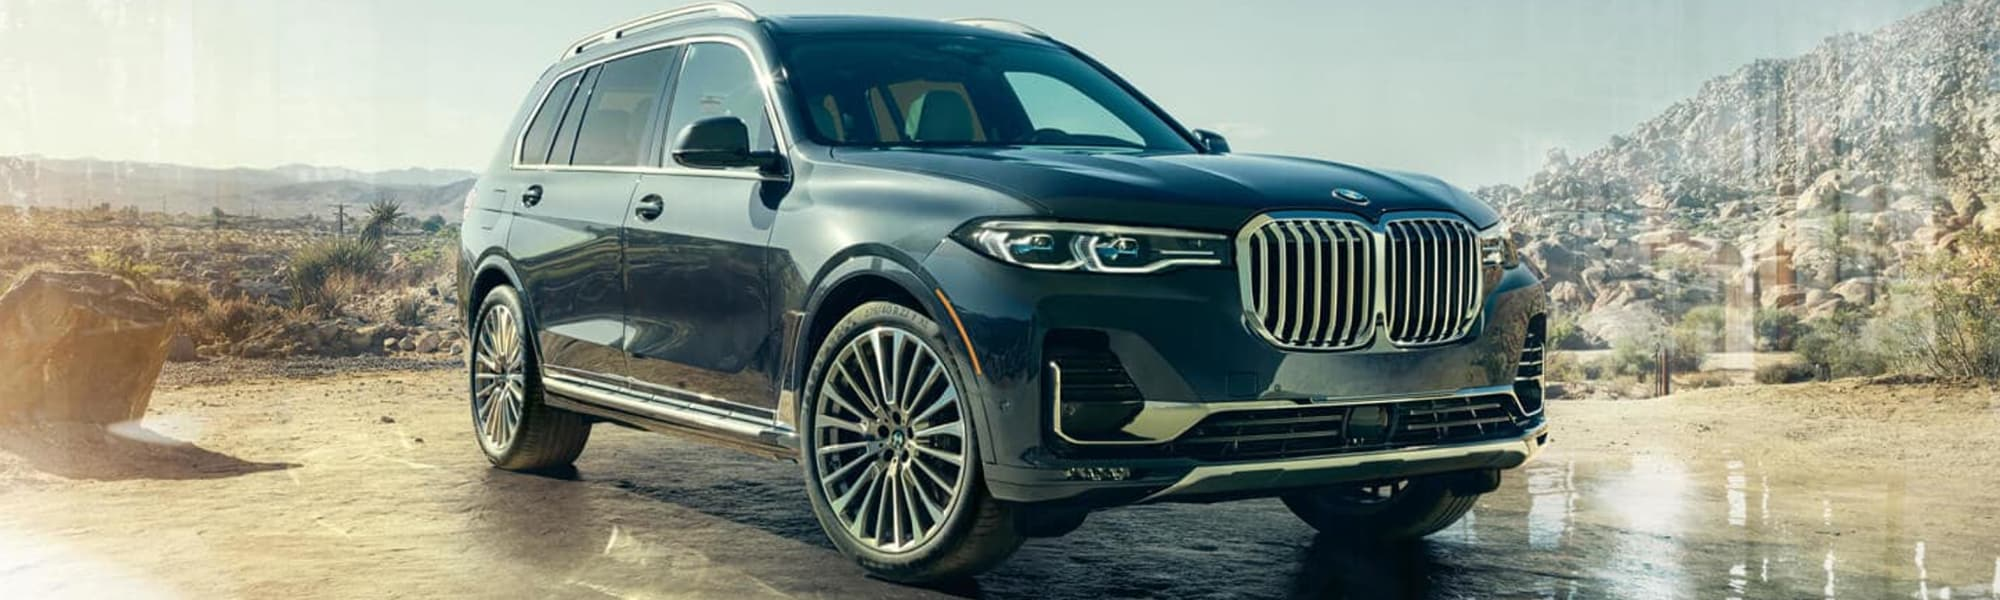 2019 Bmw X7 For Lease Bmw Of Reading Closest Bmw Dealership